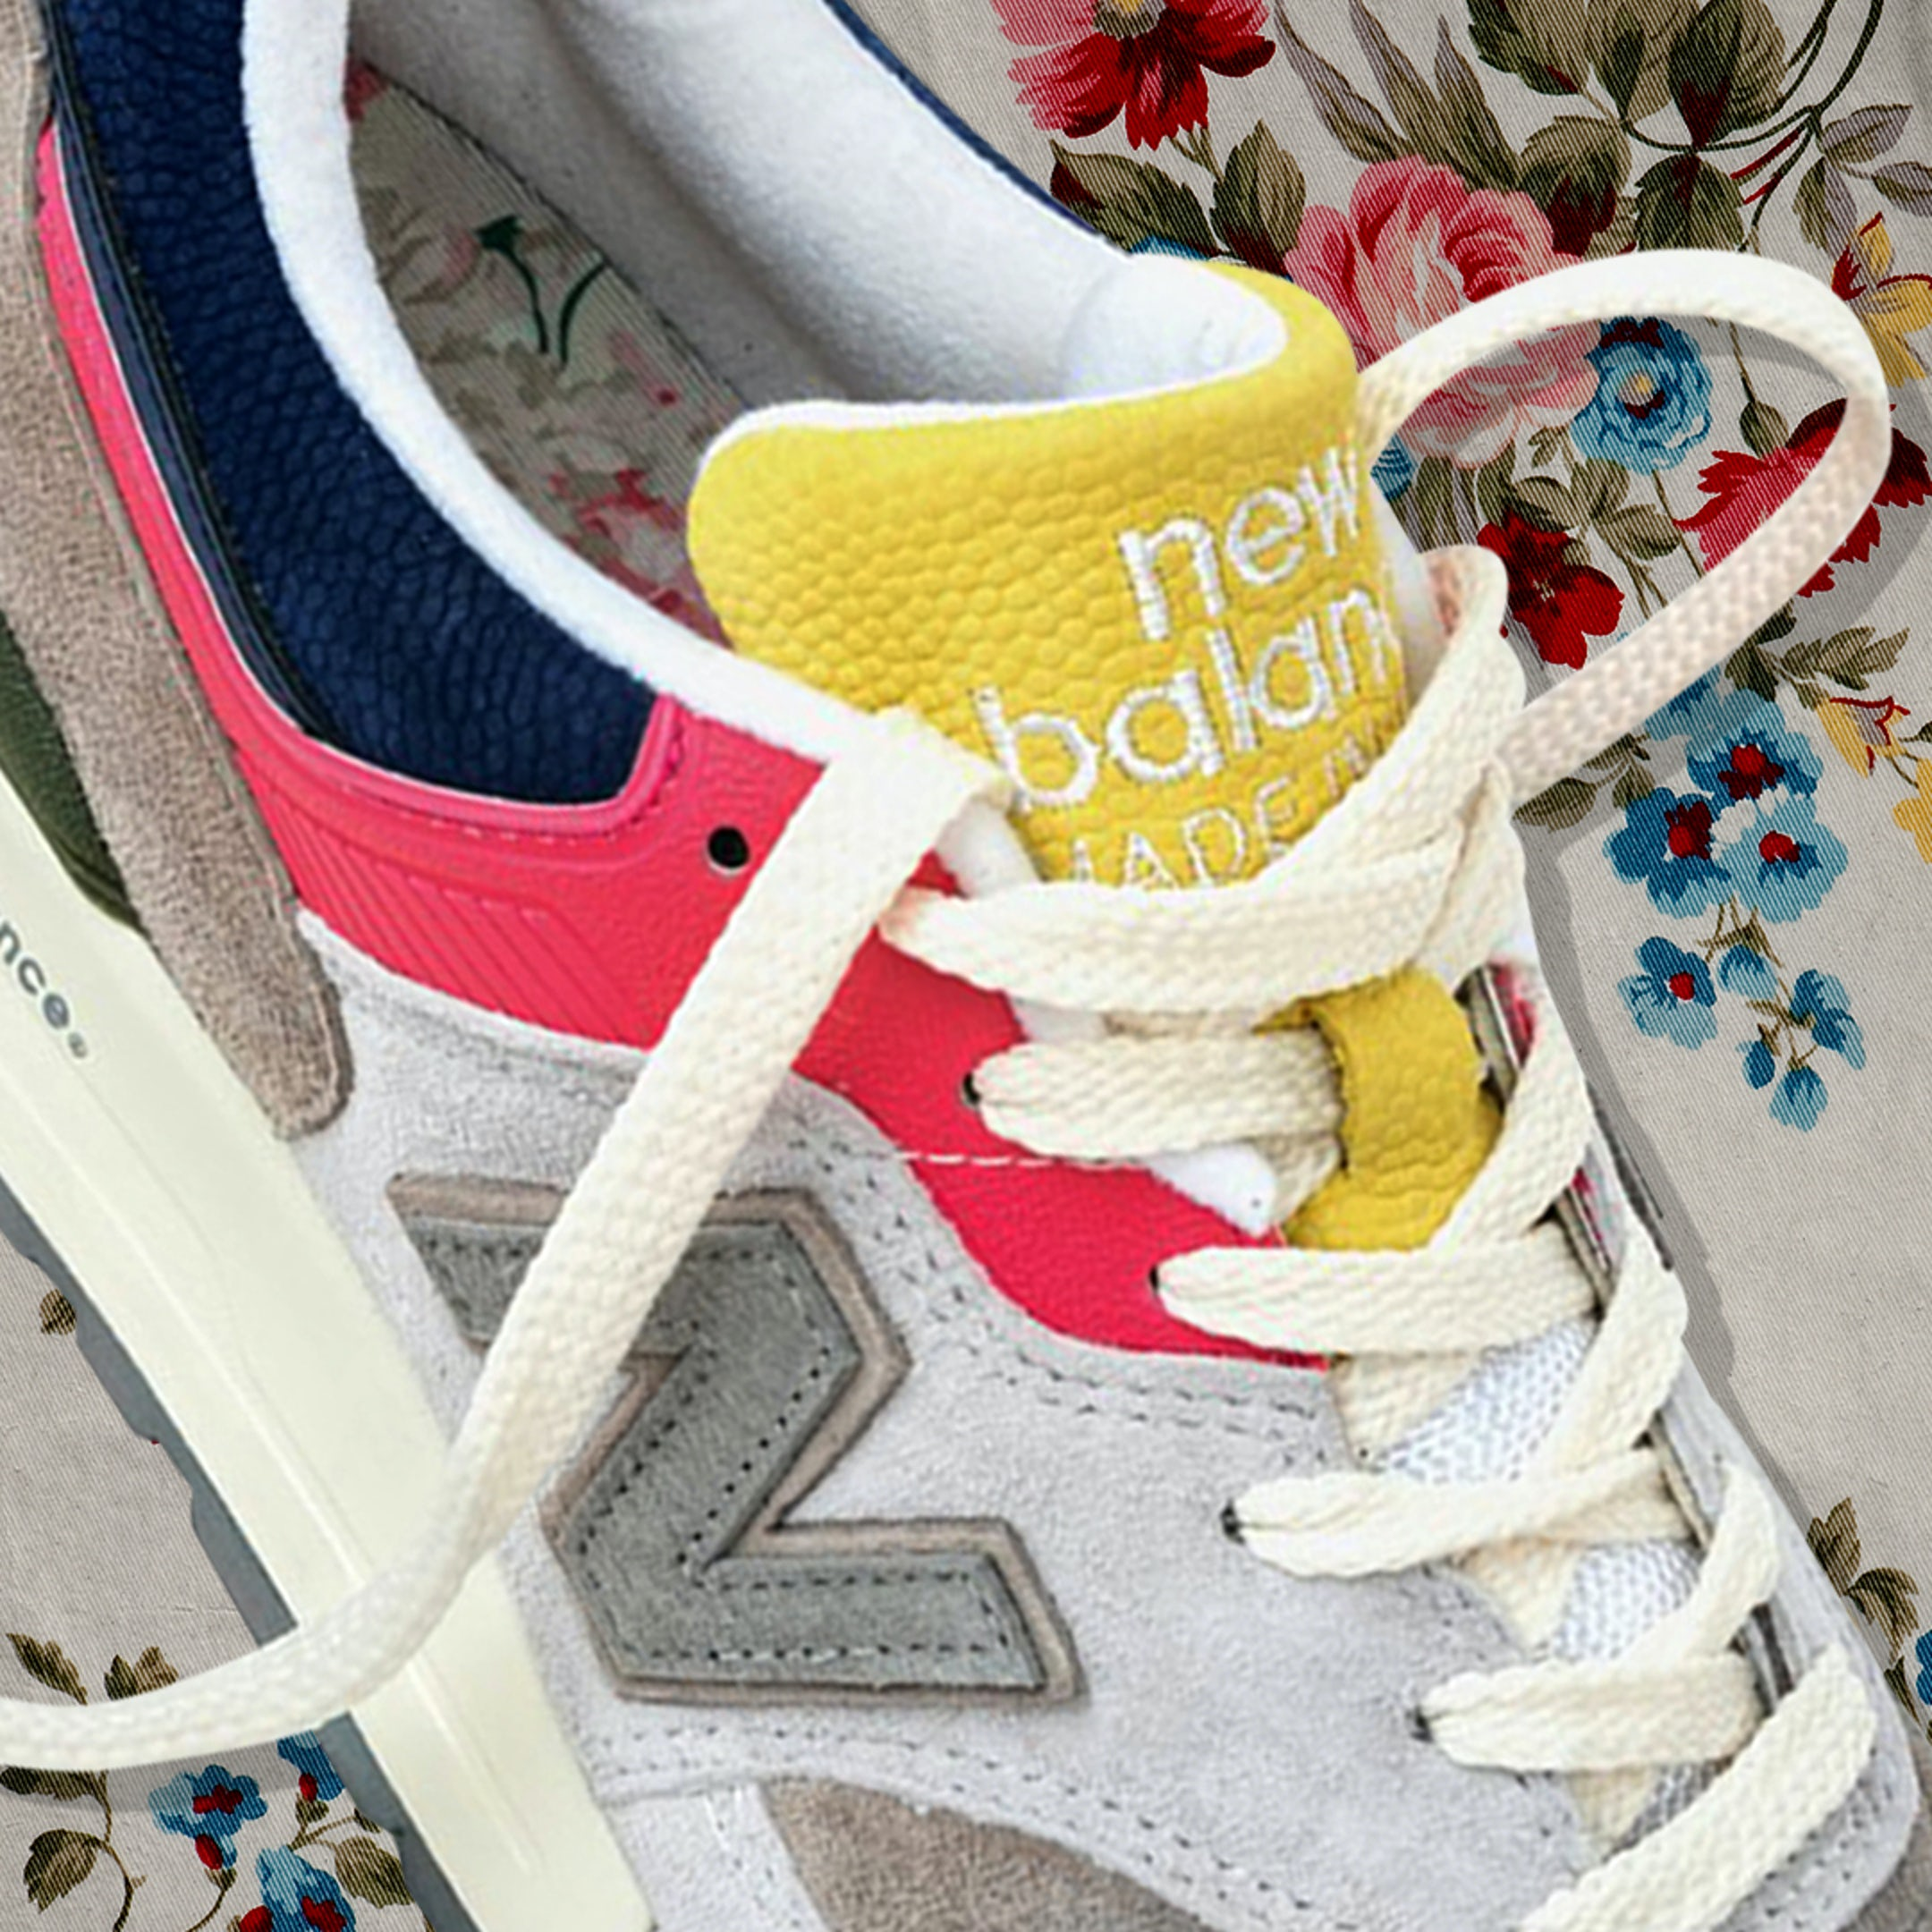 New Balance ALD Yellow Tongue Mobile